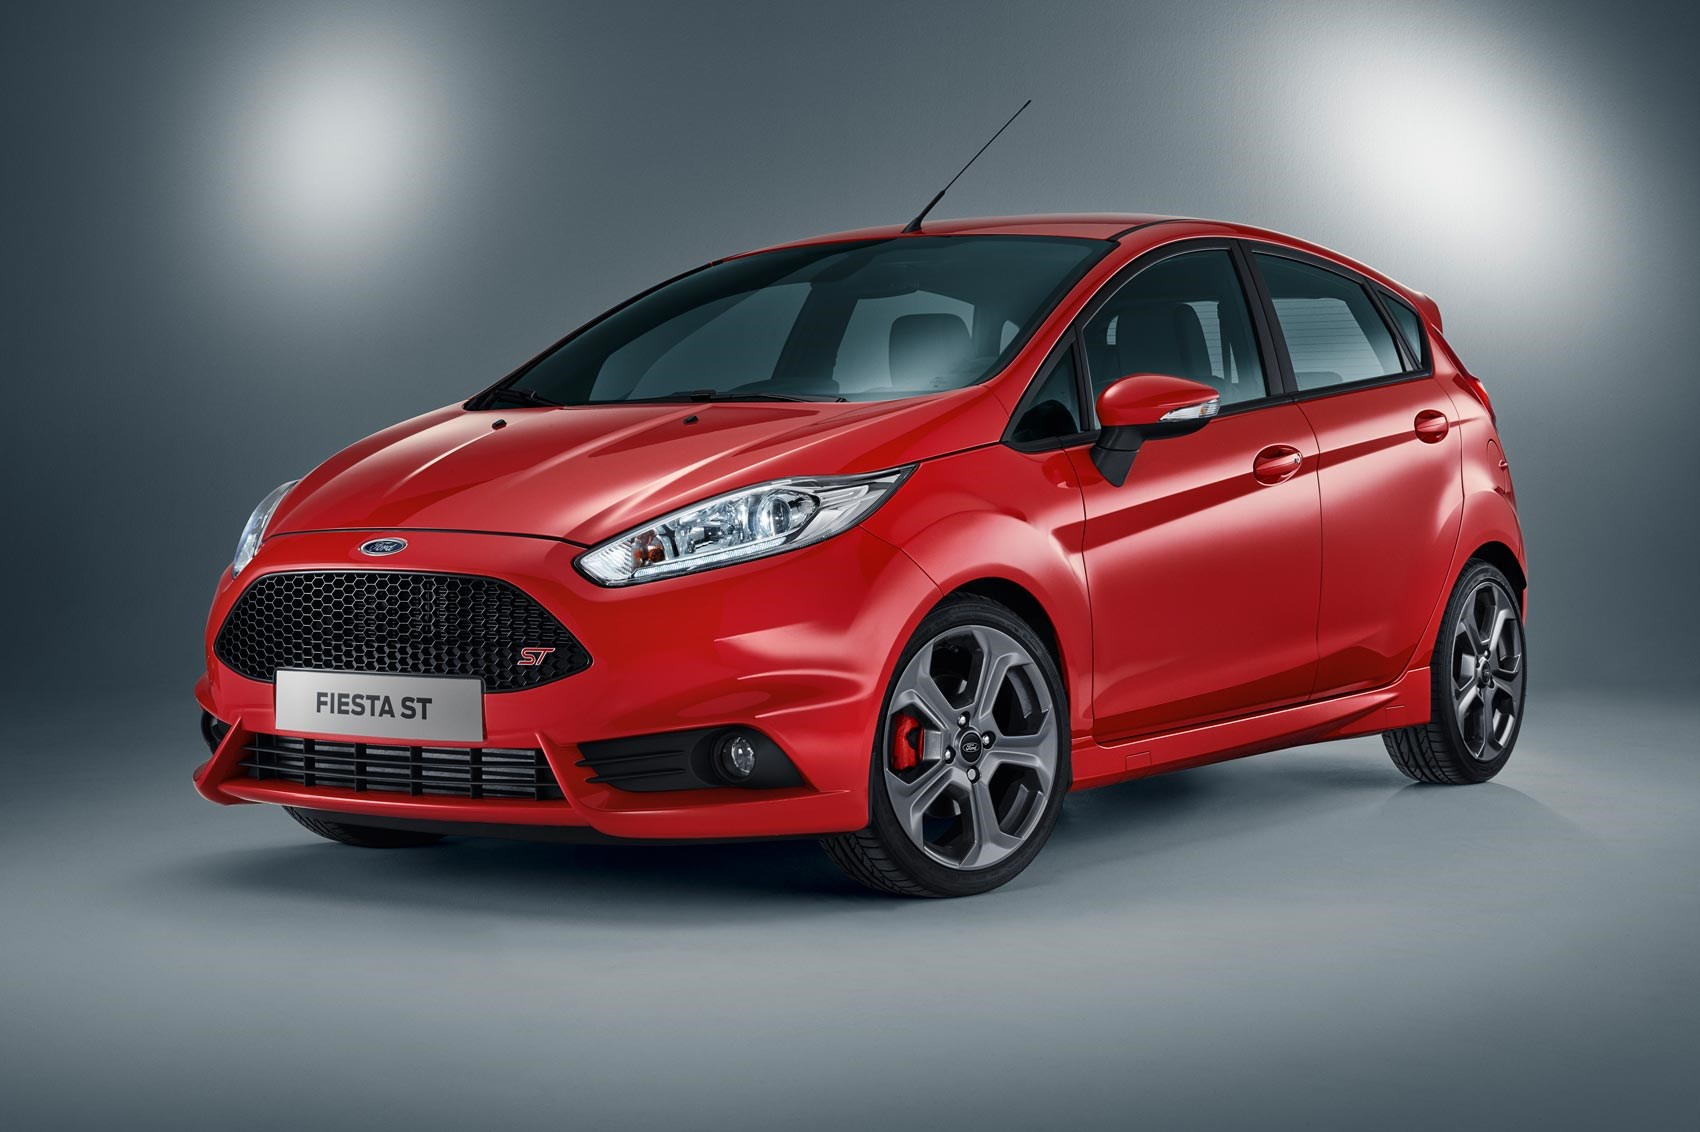 2016 Ford Fiesta St Five Door